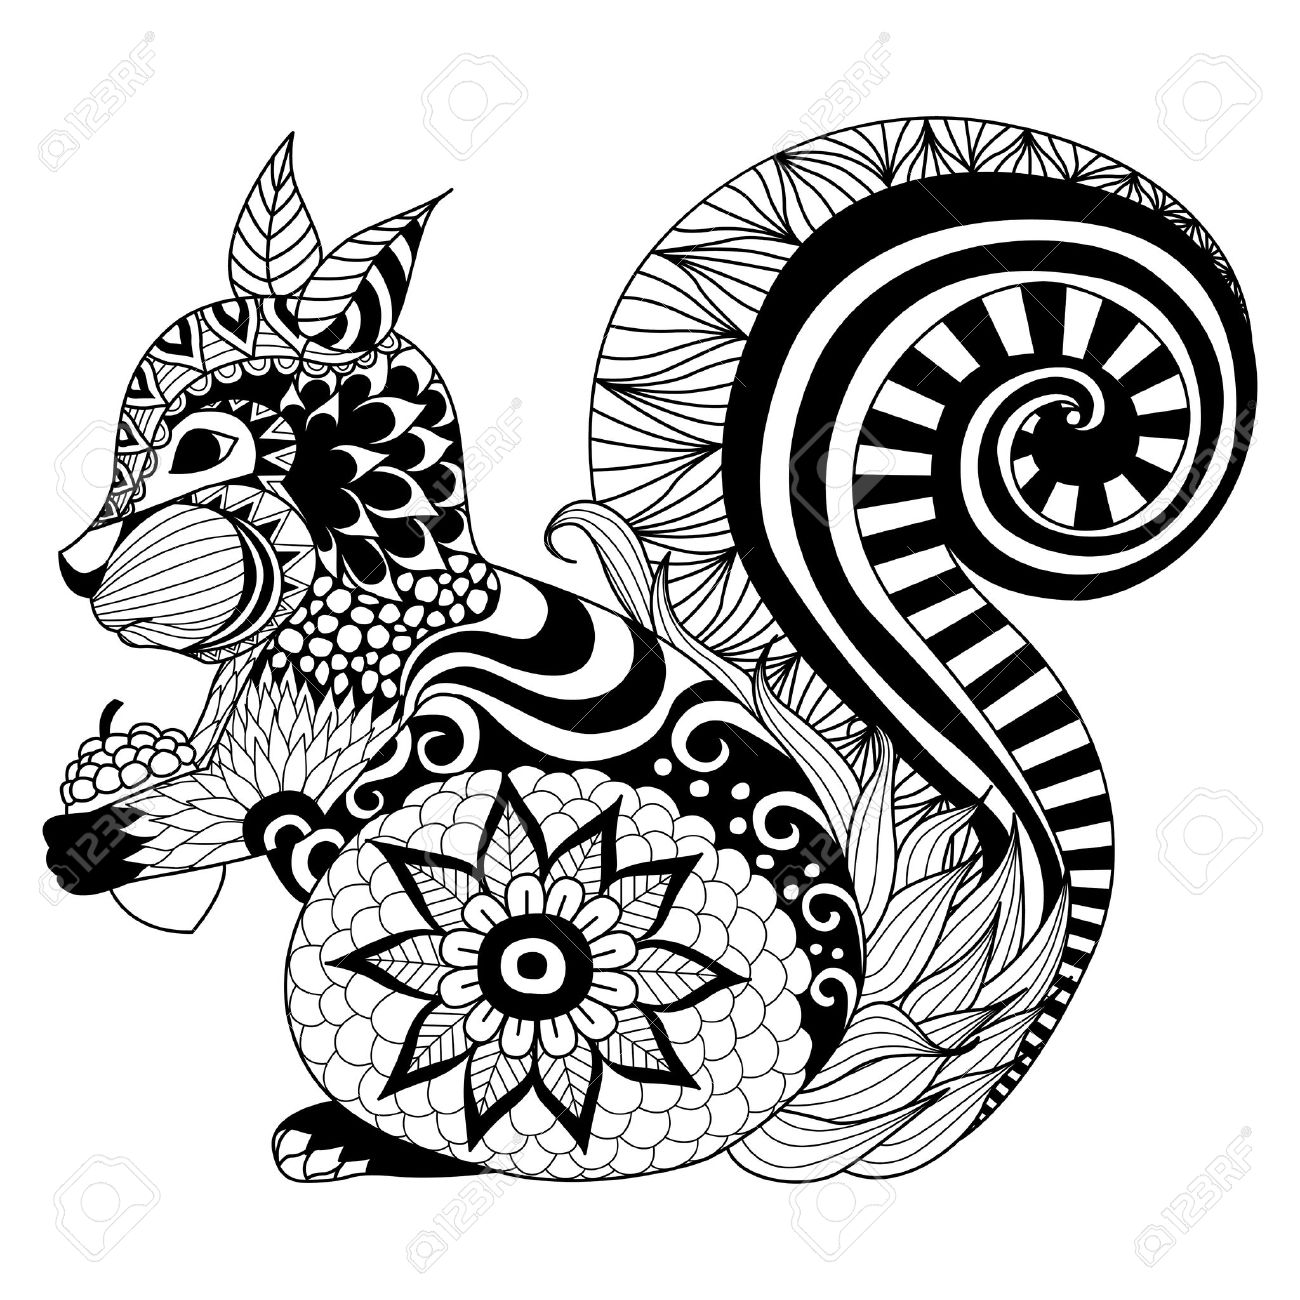 Hand Drawn Squirrel Zentangle Style For Coloring Booktattoot Shirt Designlogo